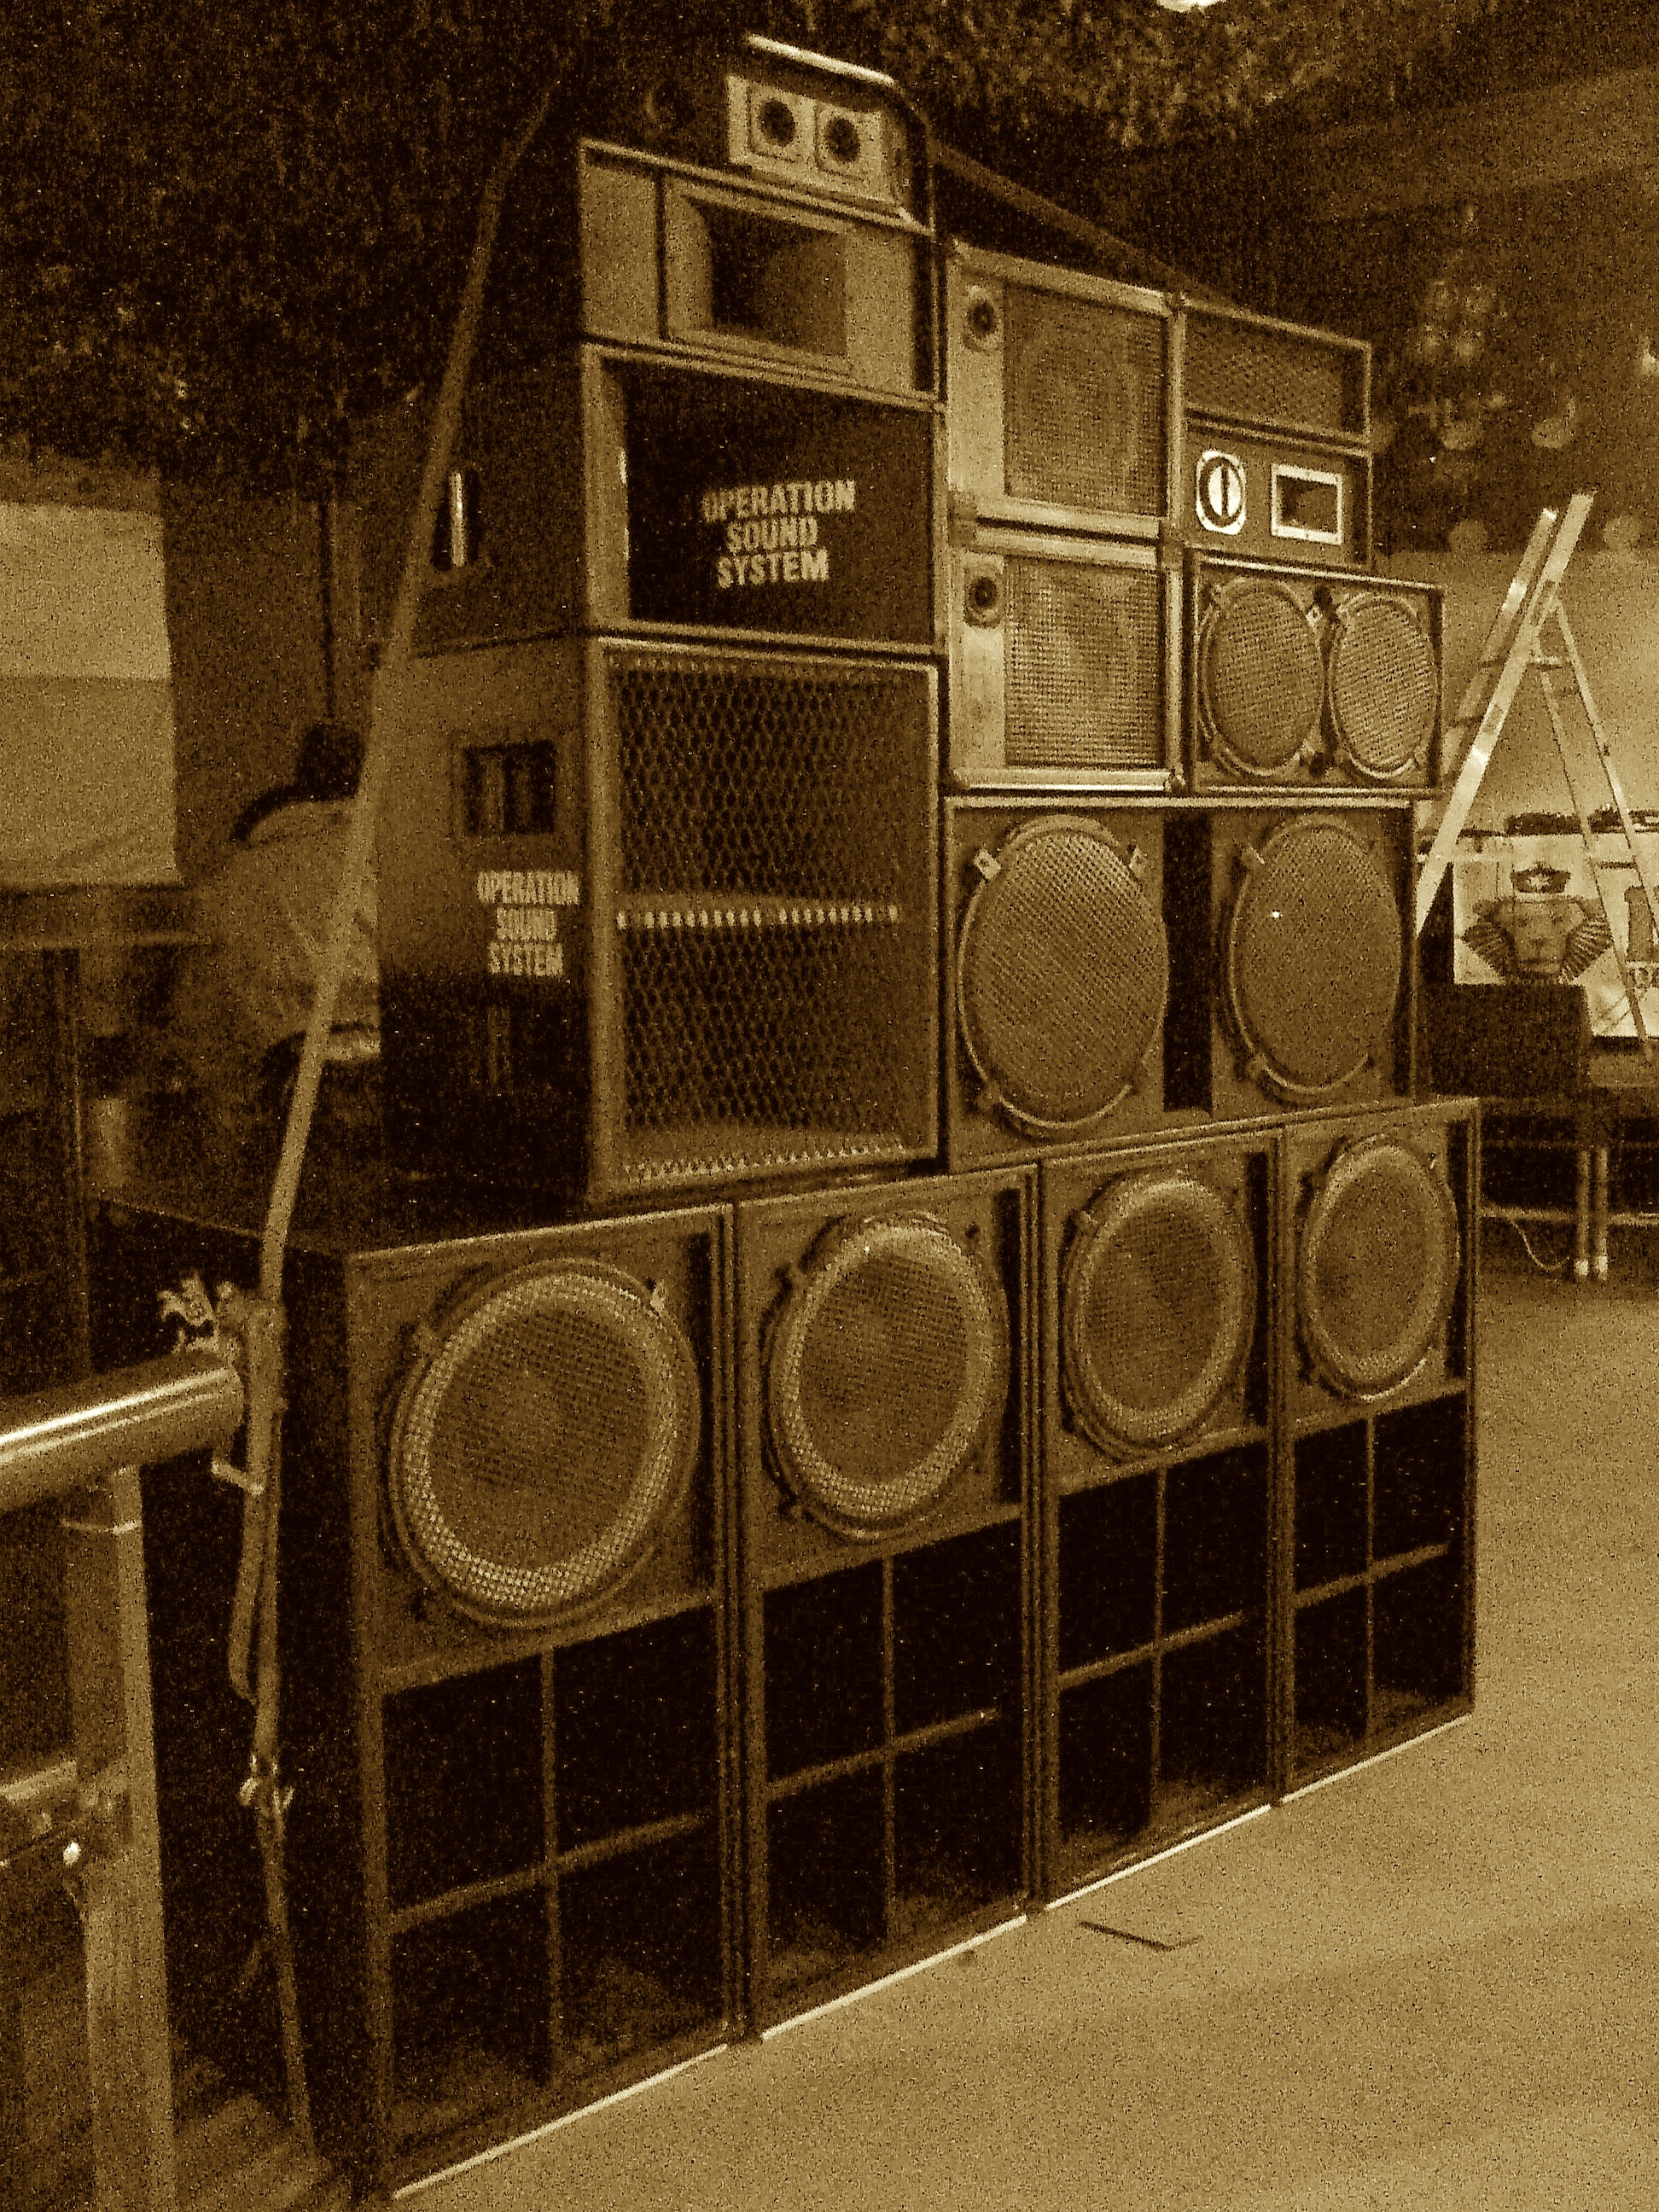 1 of 2 Operation Sound System Stack's @ Dubnium Bournemouth